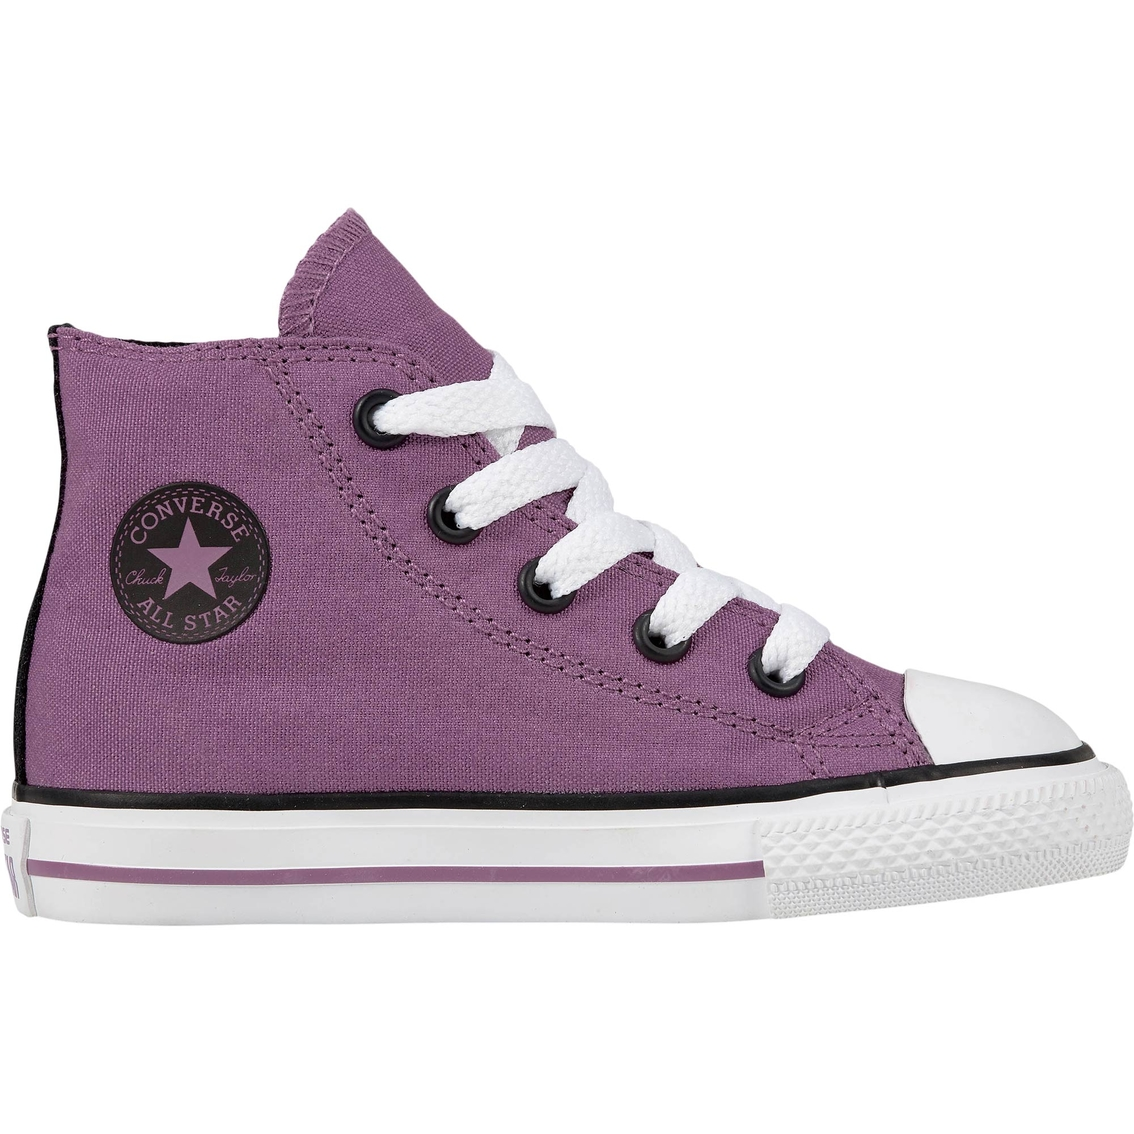 5732f348a7d4 Converse Chuck Taylor All Star High Top Sneakers